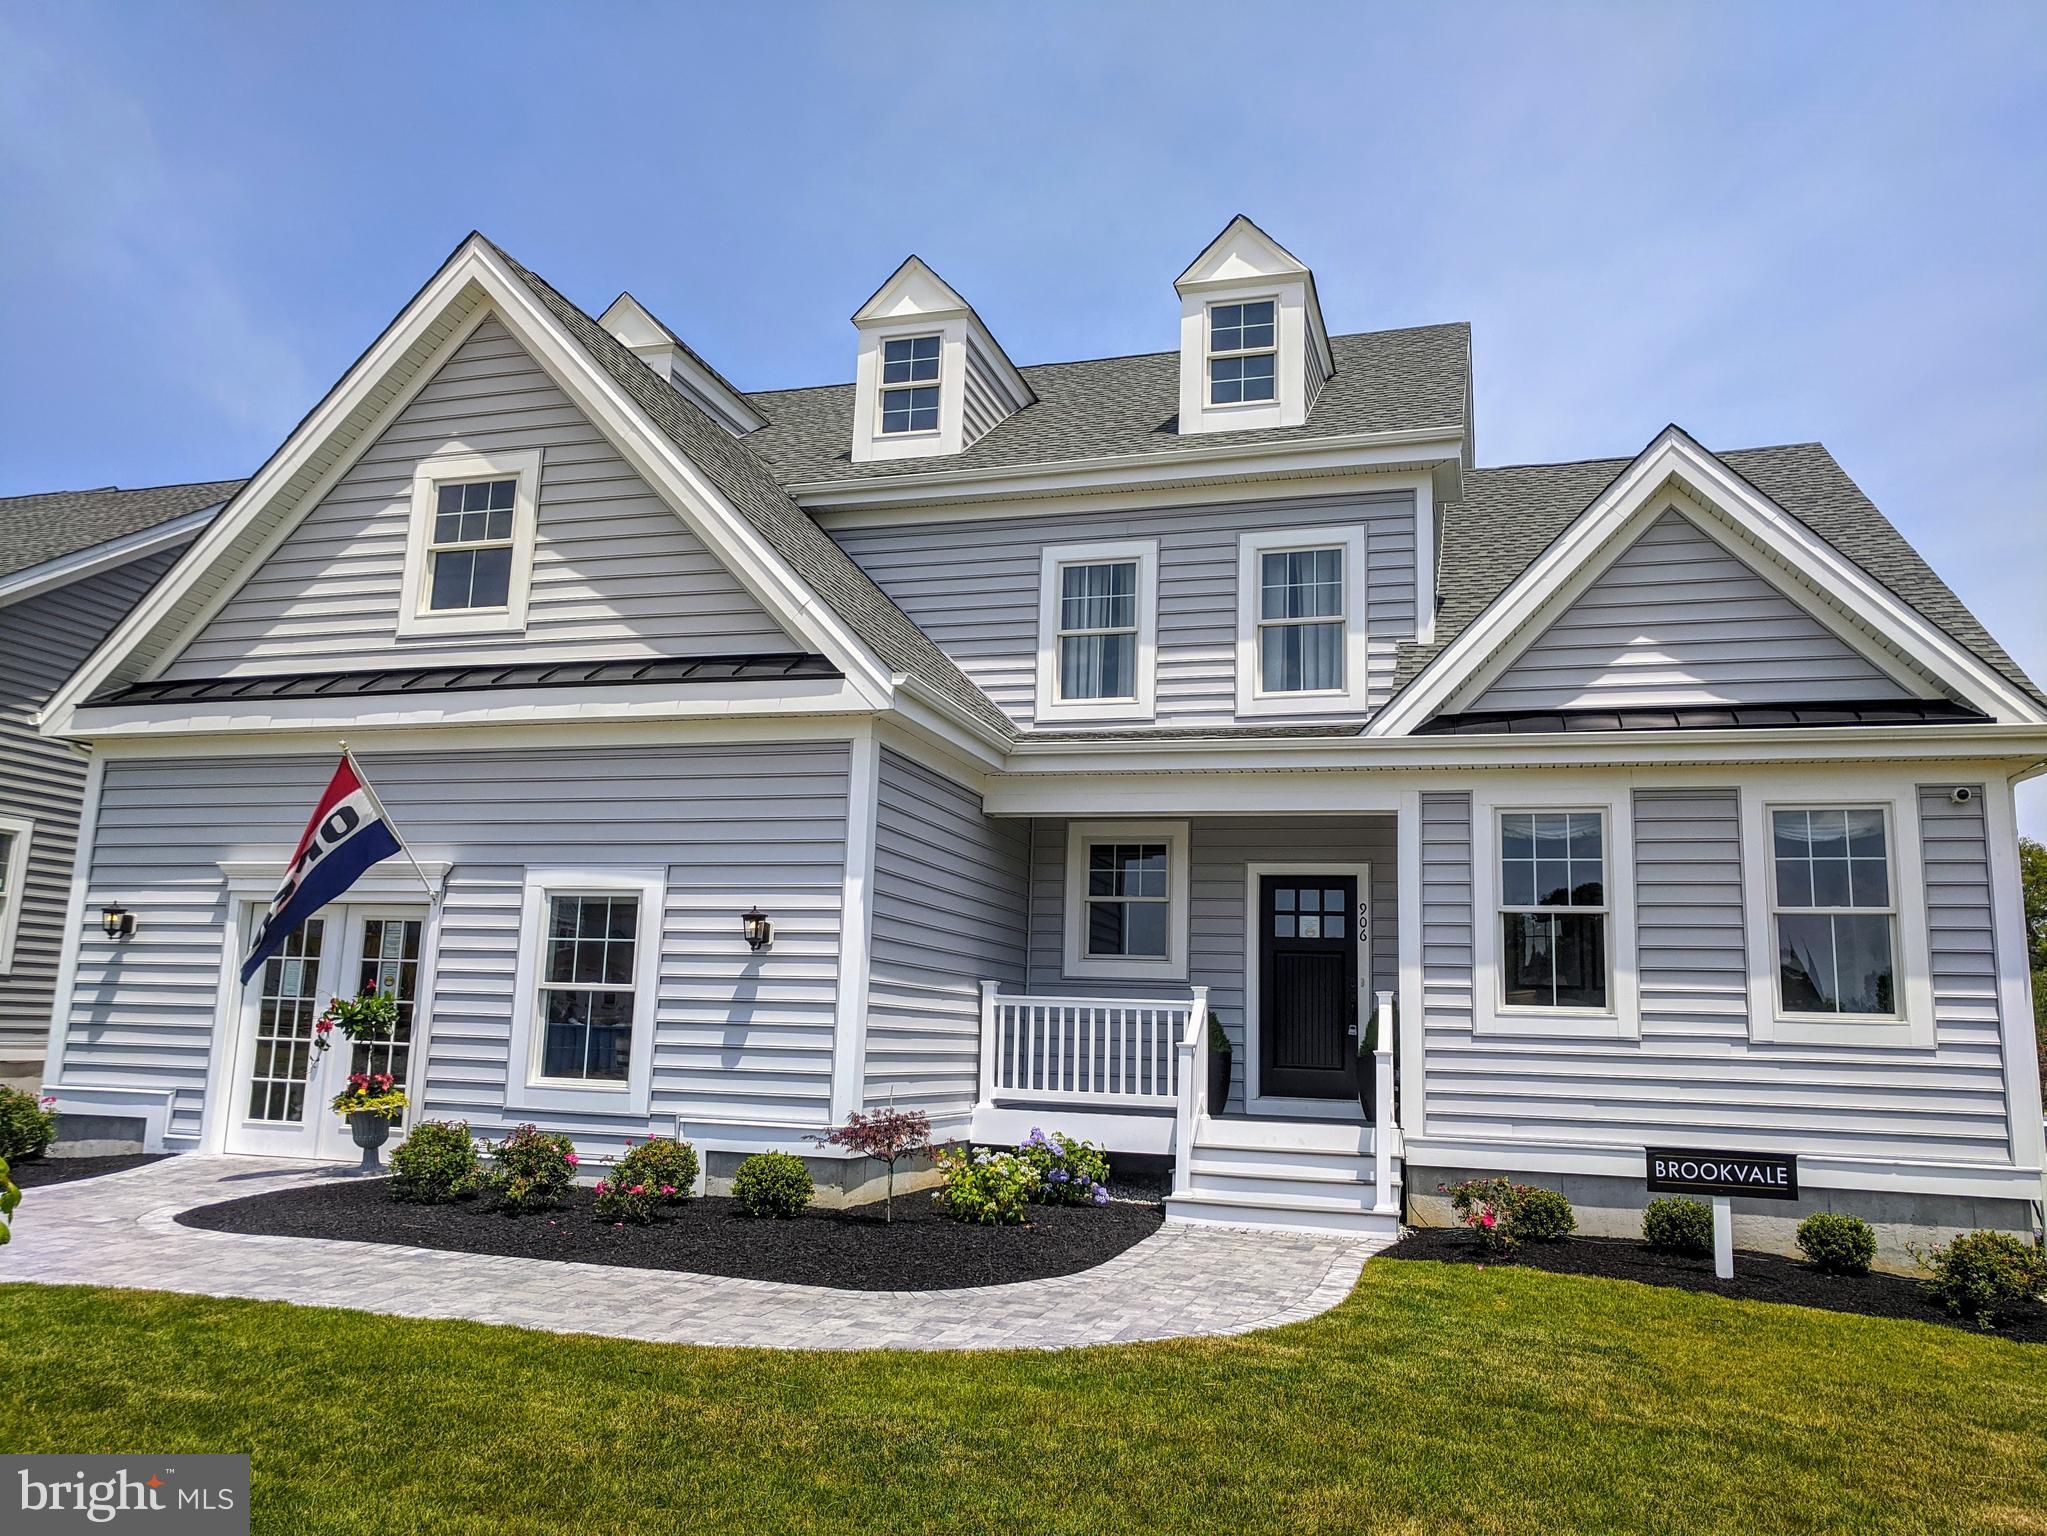 65% Sold Out!  Welcome to The Canal District at Fort DuPont by Rockwell Custom, a brand new waterside community in New Castle County.  The Brookvale is truly a magnificent home featuring the owner's bedroom on the first floor with 2 or 3 additional bedrooms upstairs and 2.5 baths. This home also has a spacious 2-car garage.  Known for it's grand two-story family room and open concept living level, this floor plan is very popular!  The owner's bedroom has a walk-in closet and impressive en-suite bathroom. The homes are centrally located to the Canal Promenade for walking, bike riding or just relaxing.  Take advantage of pre-construction pricing and choose your designer customizations! With future shops, hotels, restaurants, movie theater and marina, Fort DuPont is the new sought after Riverfront in Delaware and the lifestyle you have always craved.  Near I-95, Wilmington, Christiana shops and dining, Newark, South Jersey & southern beaches.  Proposed construction, photos show similar home.  Sales Center open Tuesday, Thursday, Friday 11am-6pm and Saturday, Sunday 12-5pm for appointments. Call 302-898-2010 or email FortDupont@rockwellcustom.com to schedule an appointment. GPS: 260 Old Elm Avenue. Delaware City, DE 19706.